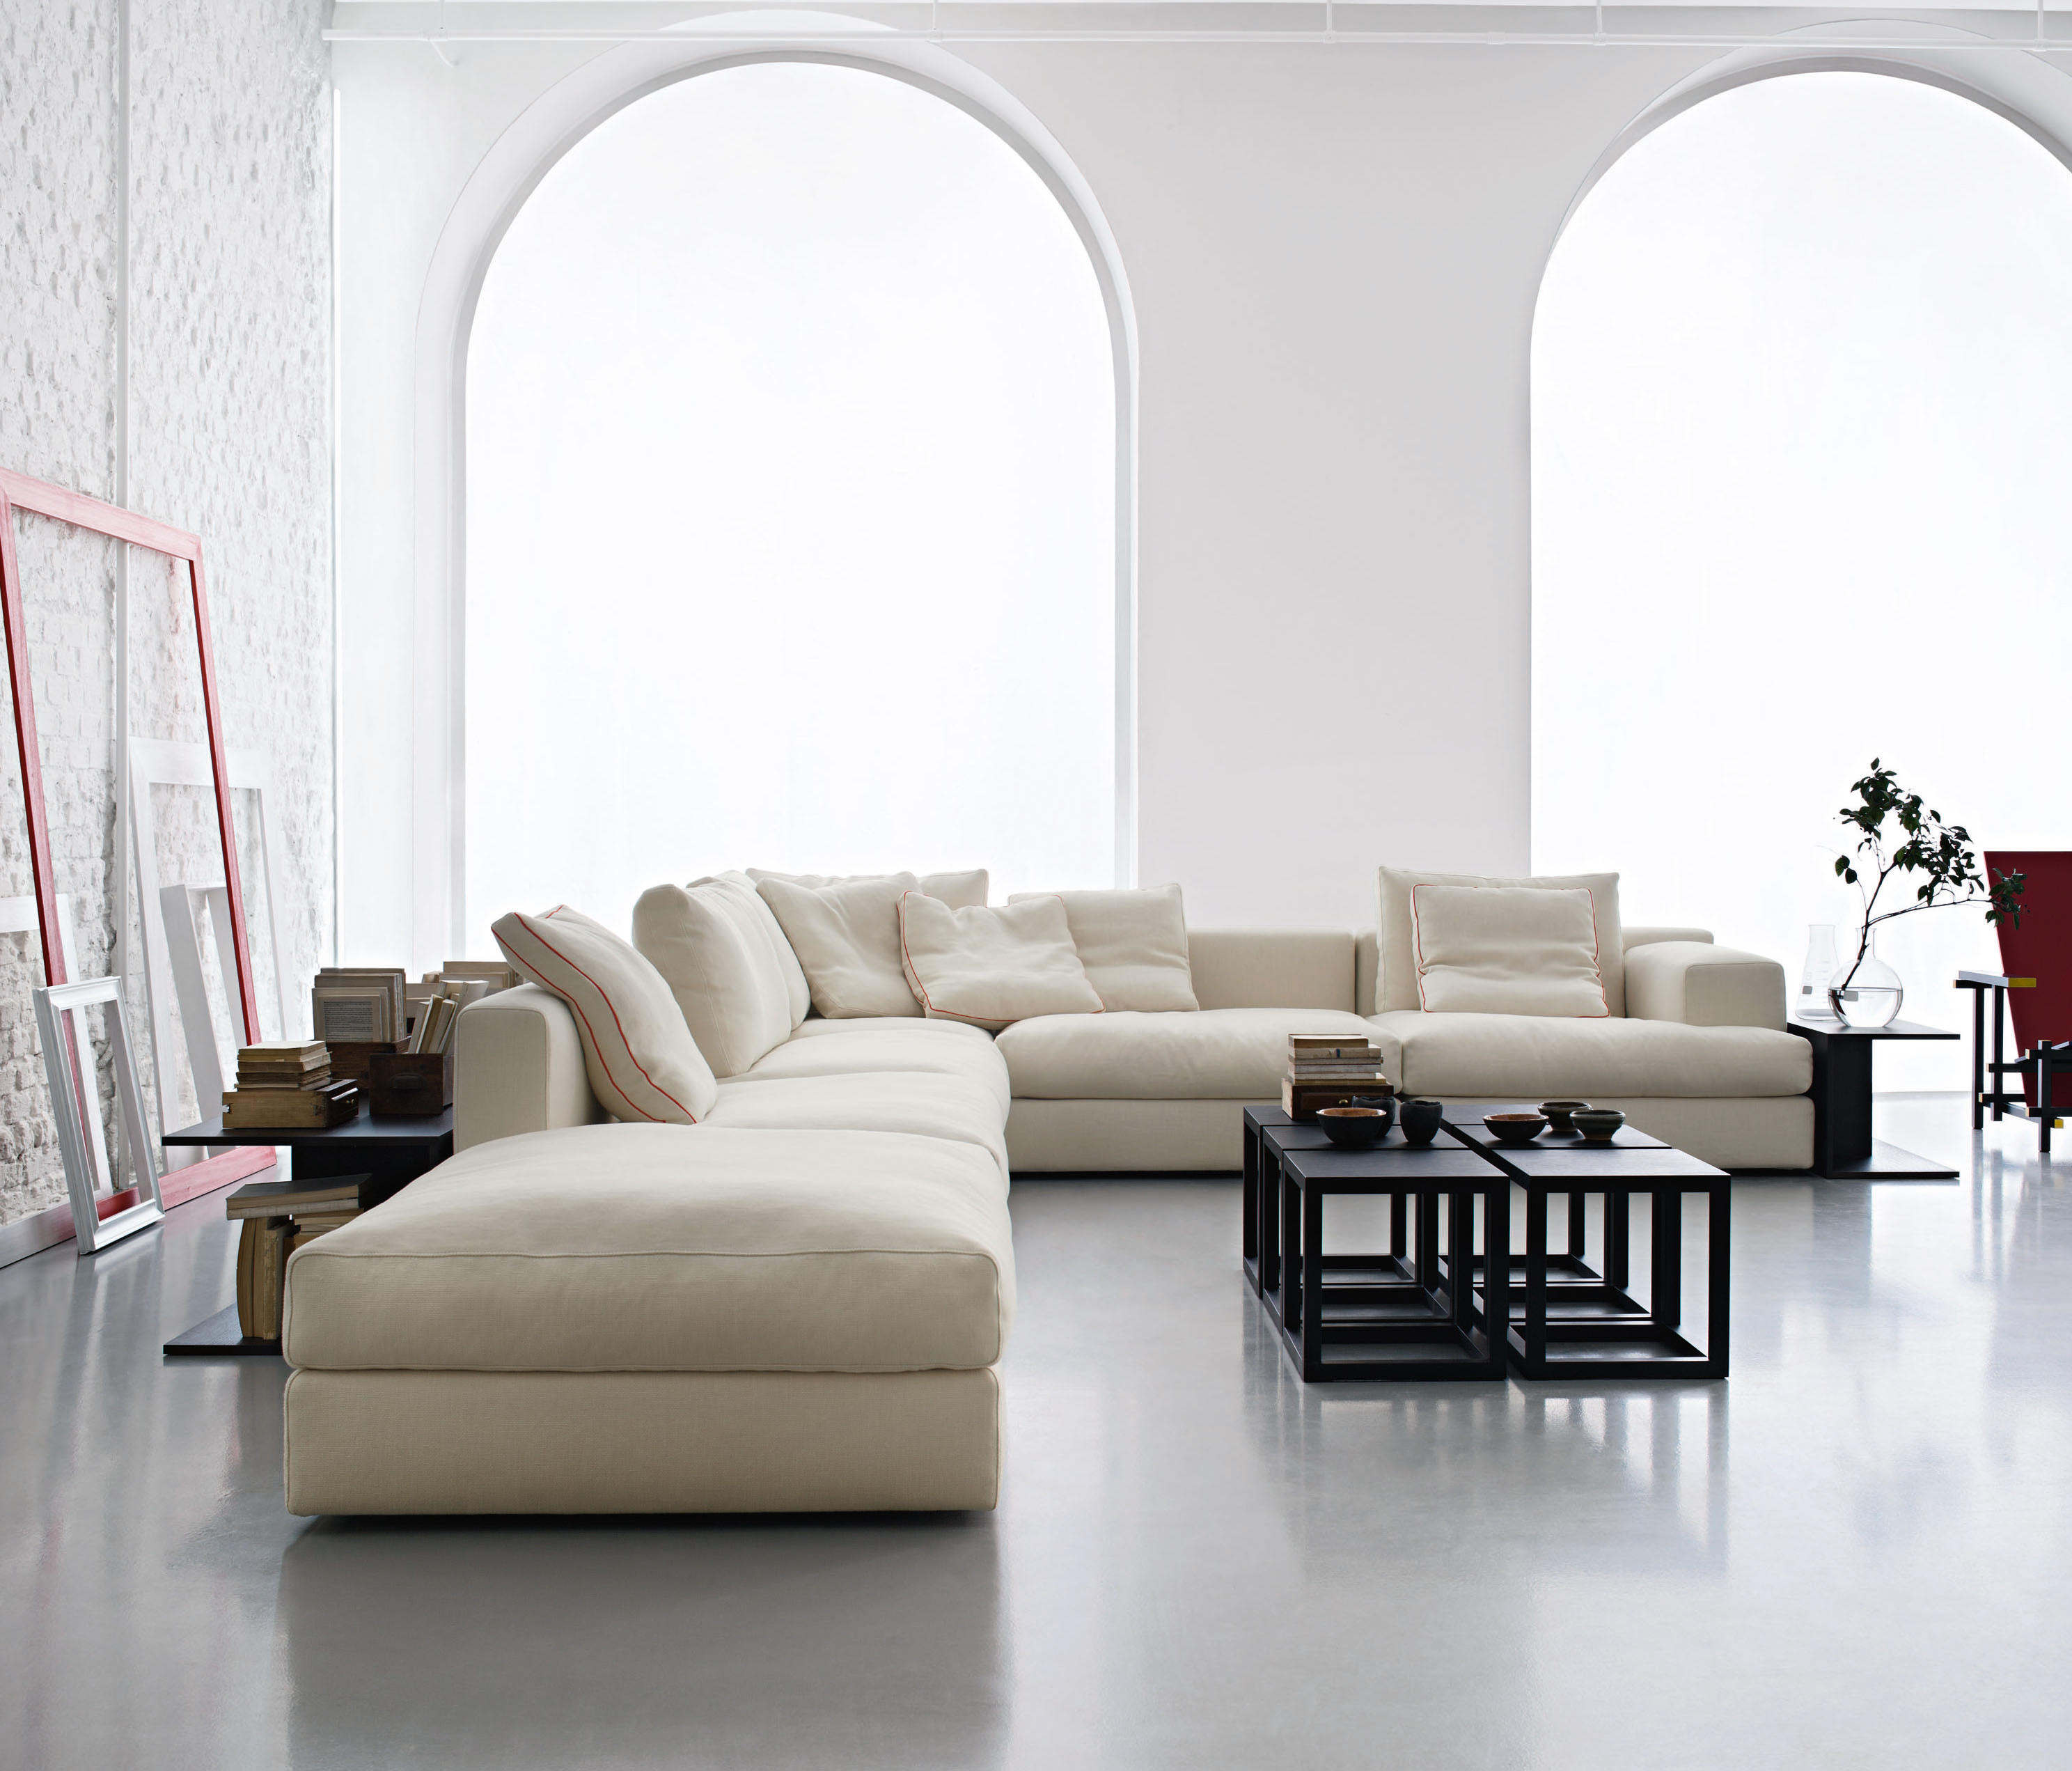 193 MILOE  Sofas from Cassina  Architonic